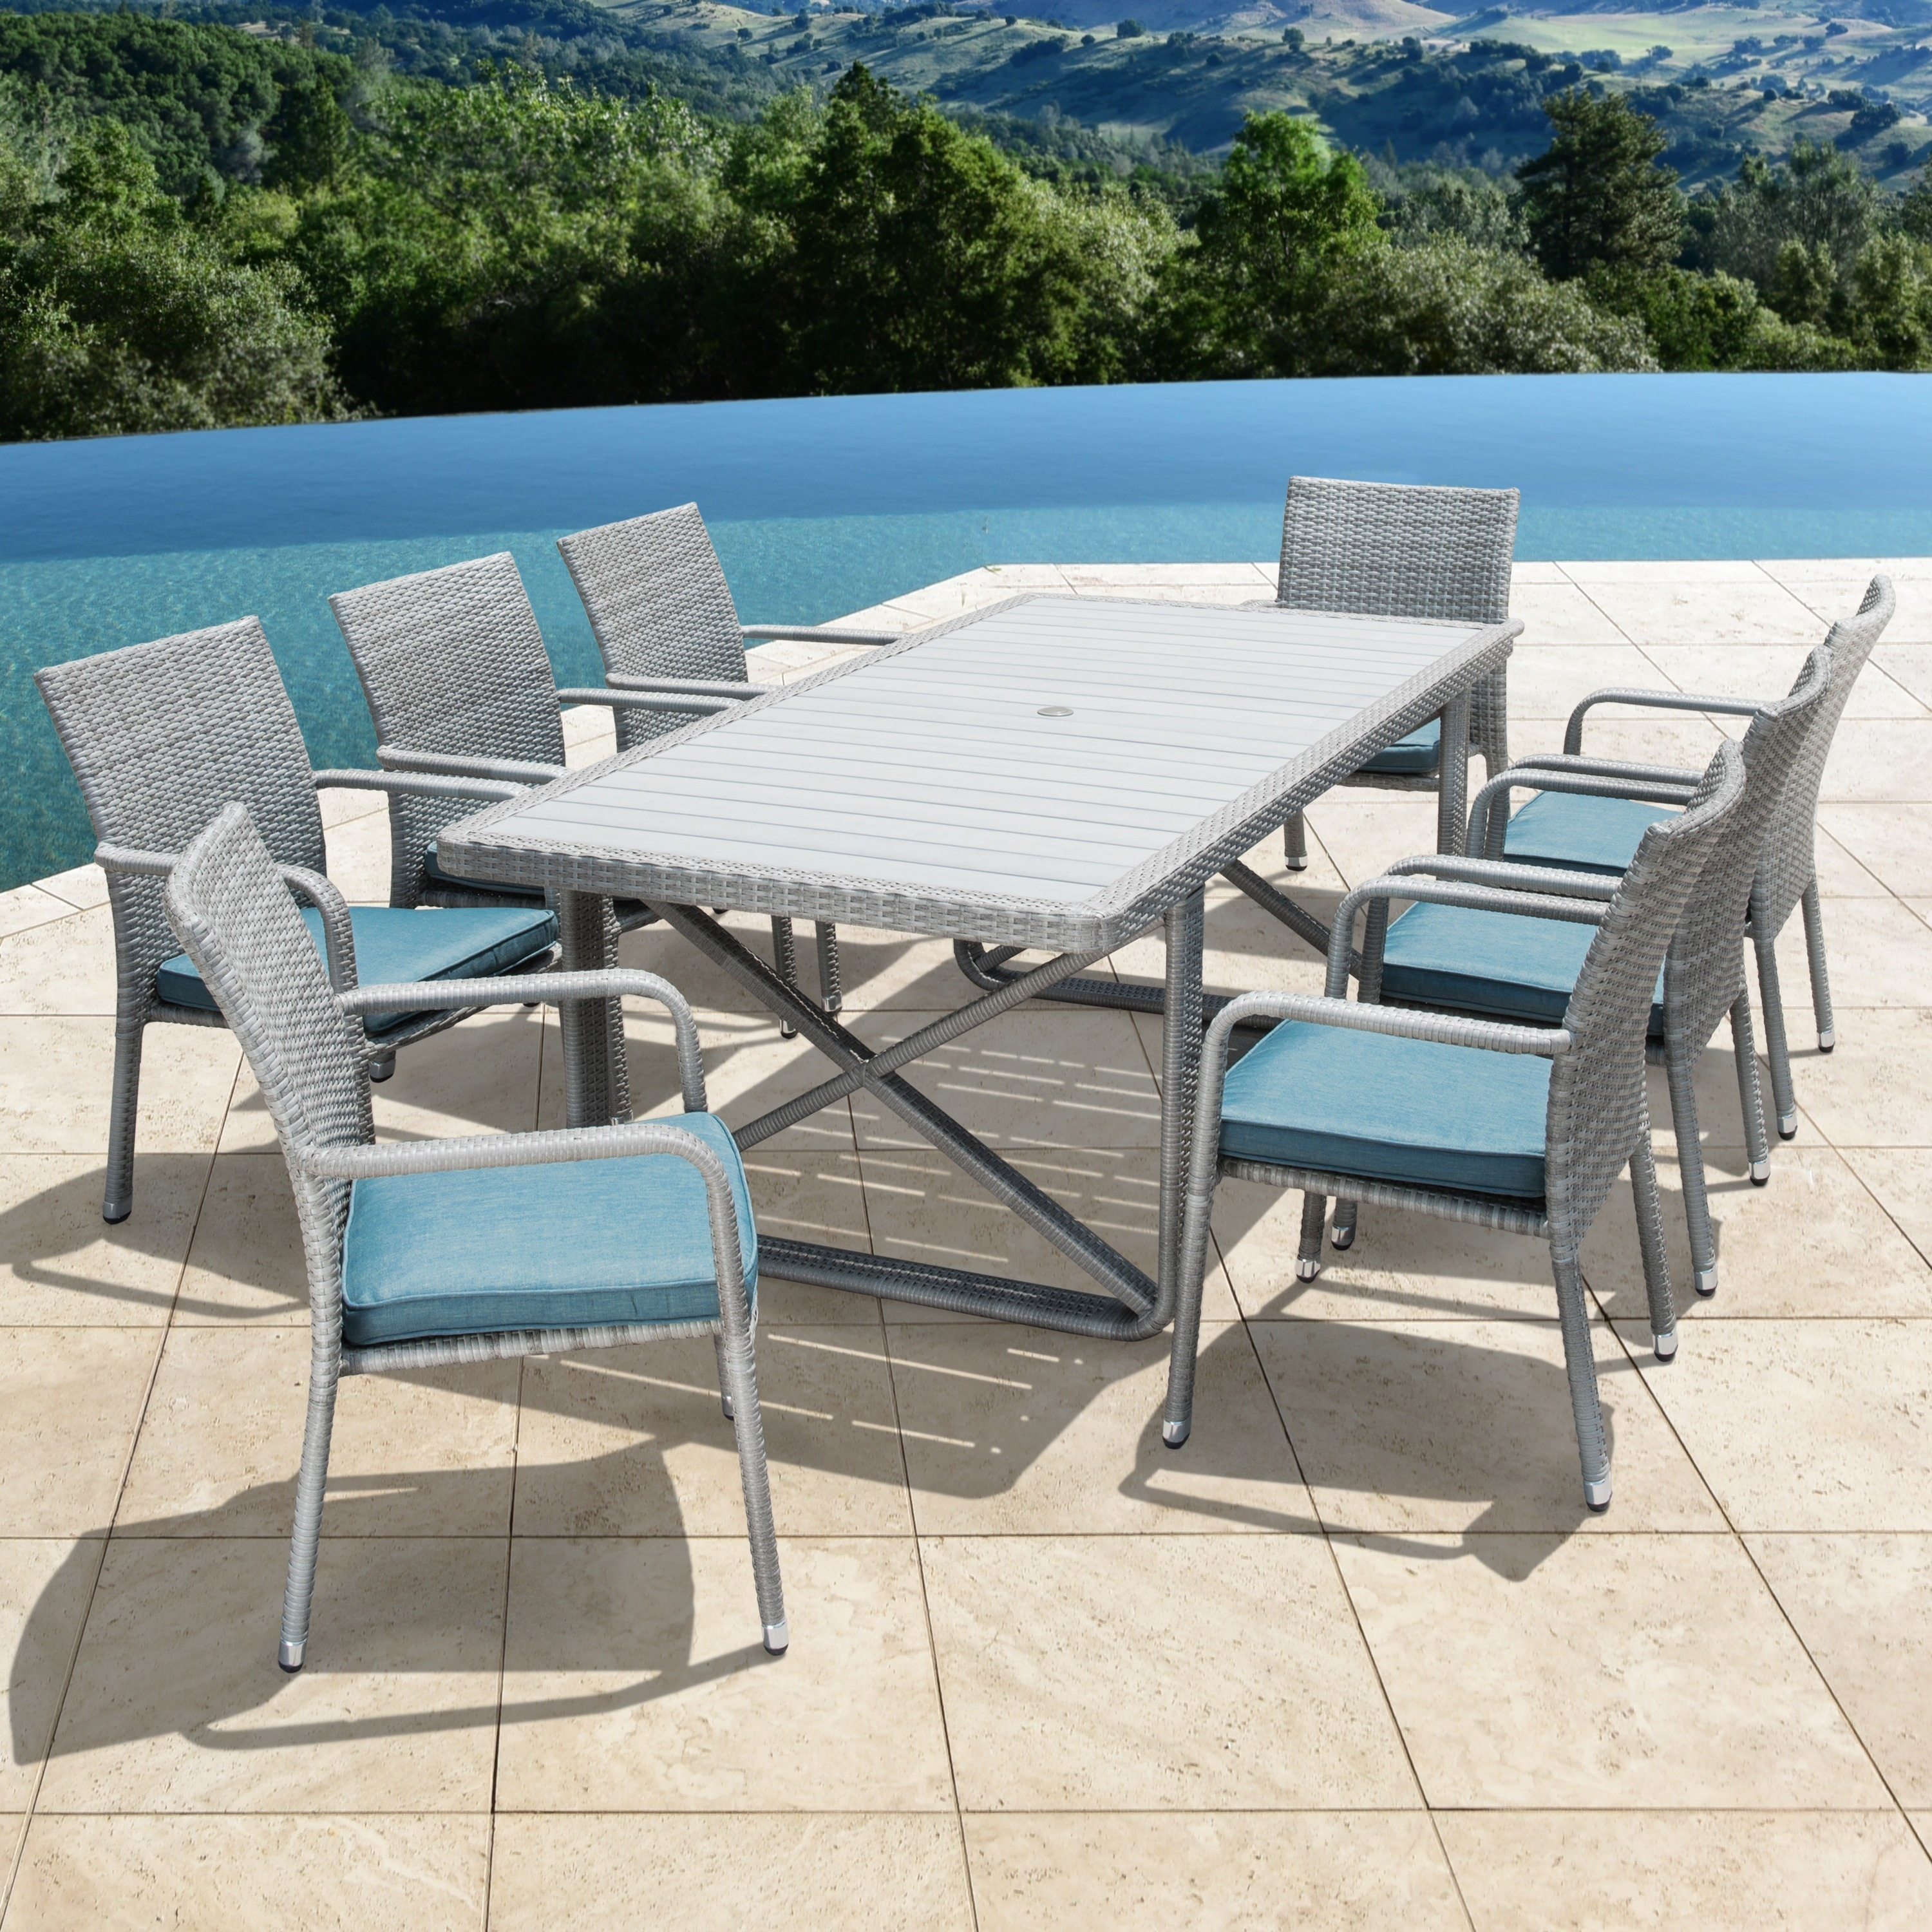 Corvus Martinka 9-piece Grey Wicker Patio Dining Set with Cushions ...